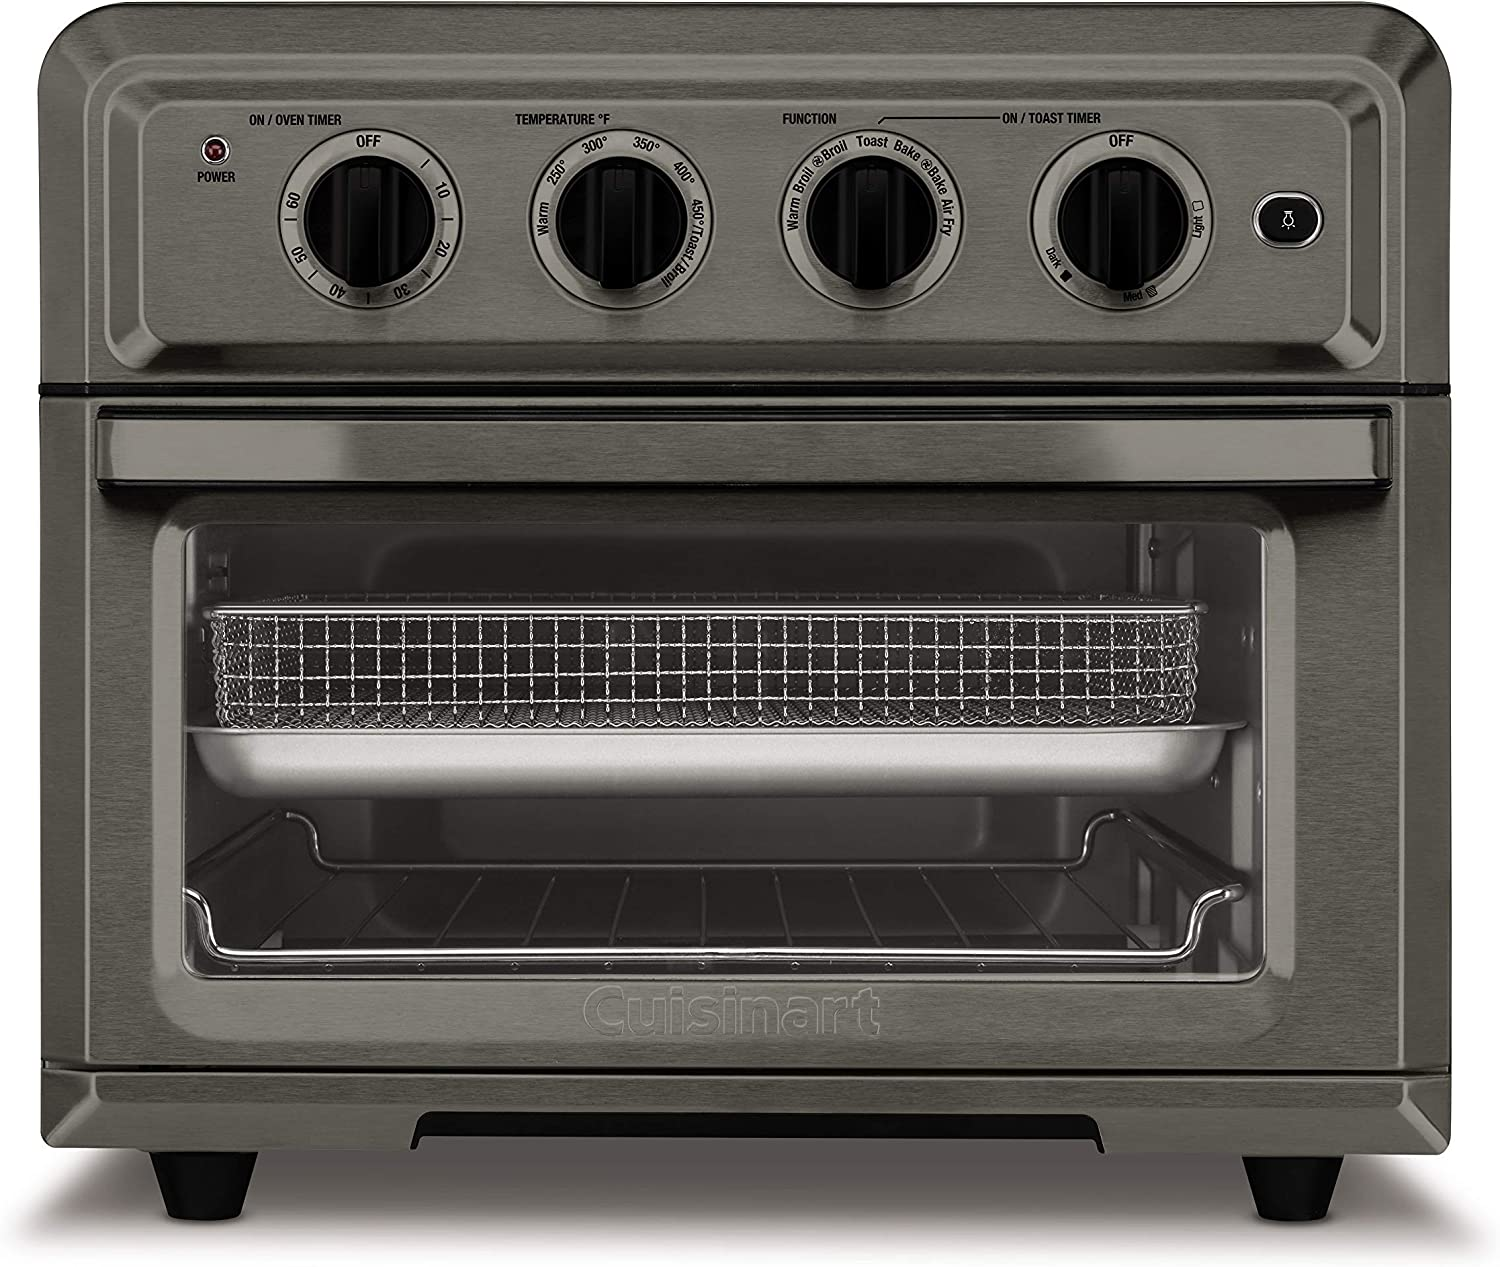 Cuisinart TOA-60BKS Convection Daily bargain Max 80% OFF sale Toaster Oven Black Airfryer SS